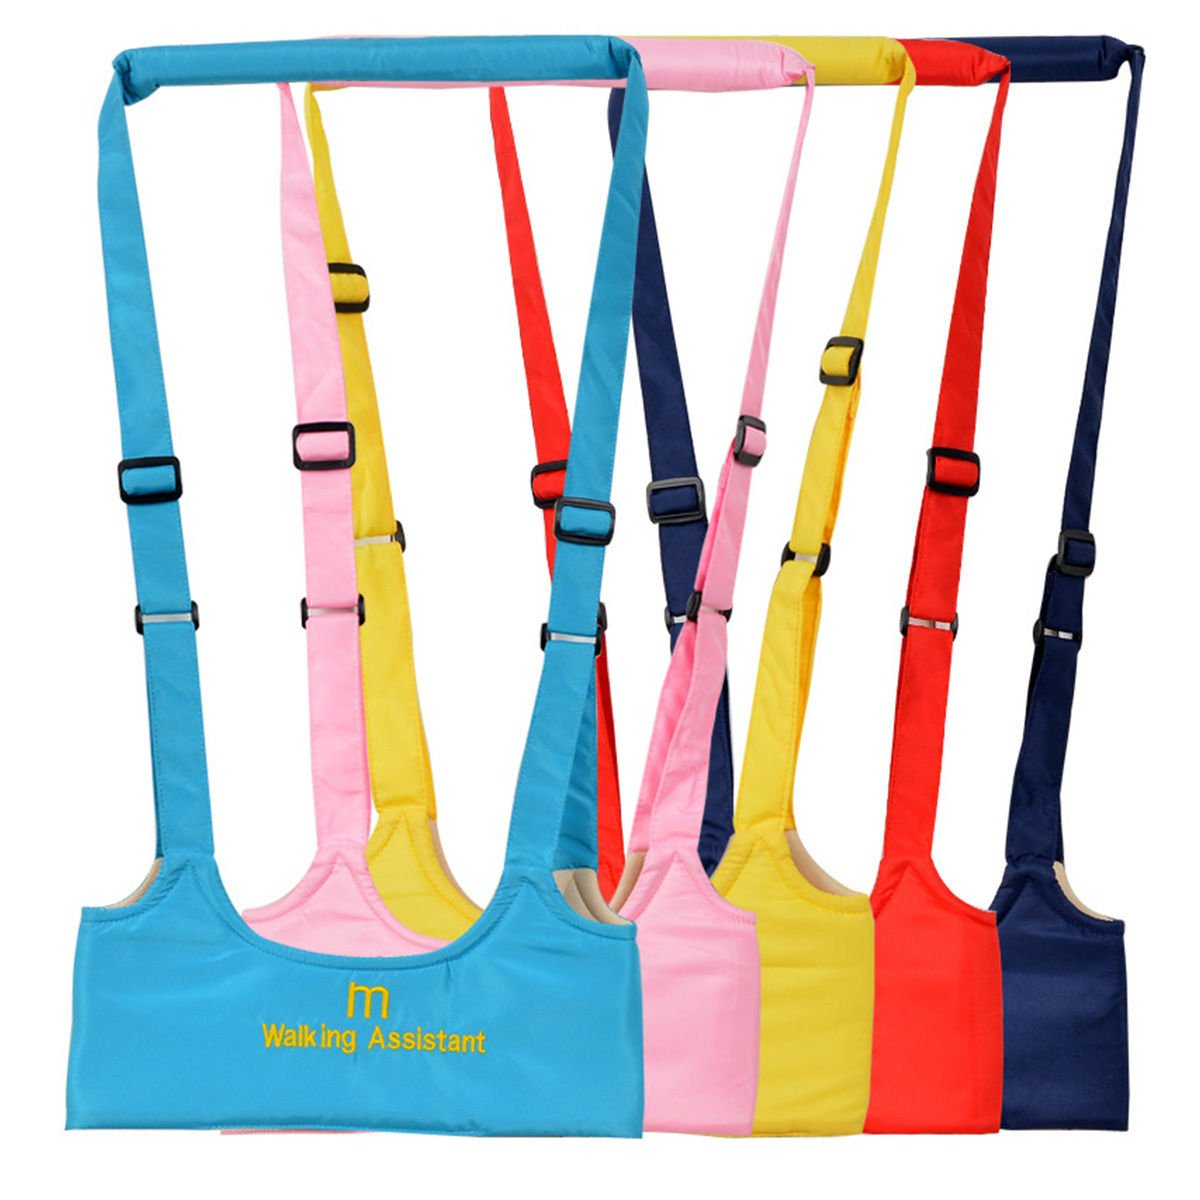 Babywalker Baby Toddler Walking Assistant Protective Belt Carry Trooper Walking Harness Learning Assistant Learning Walk Safety Reins Harness Walker Wings (Yellow) IBEPRO